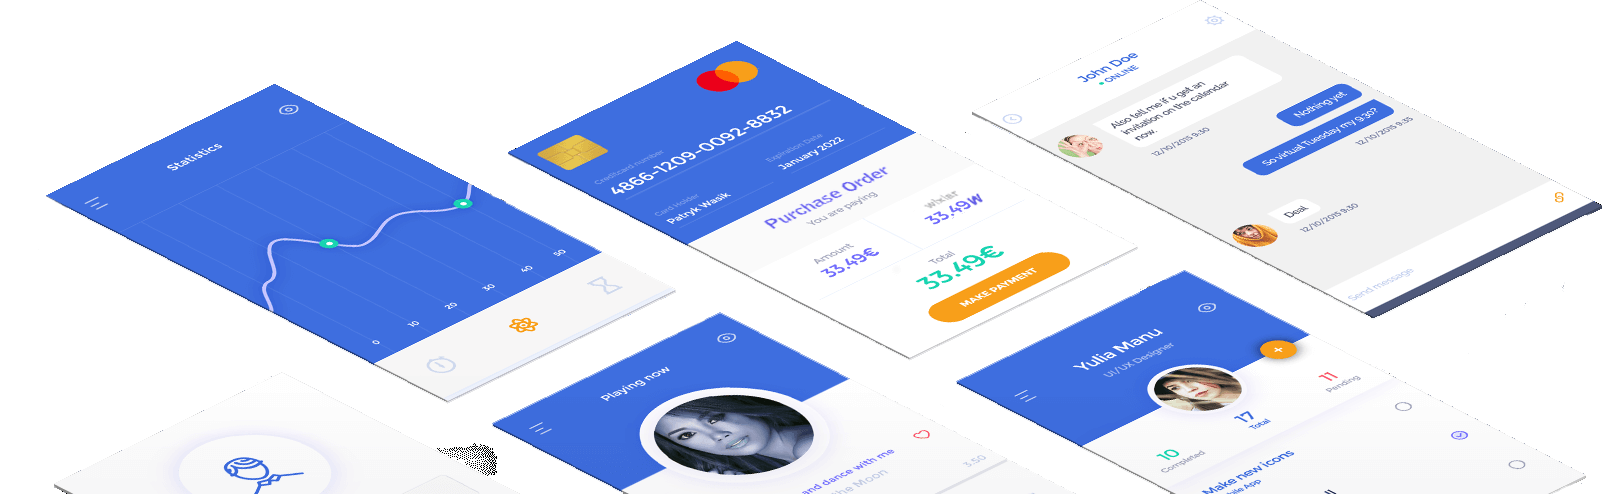 Wixlar_Mobile_Wallets